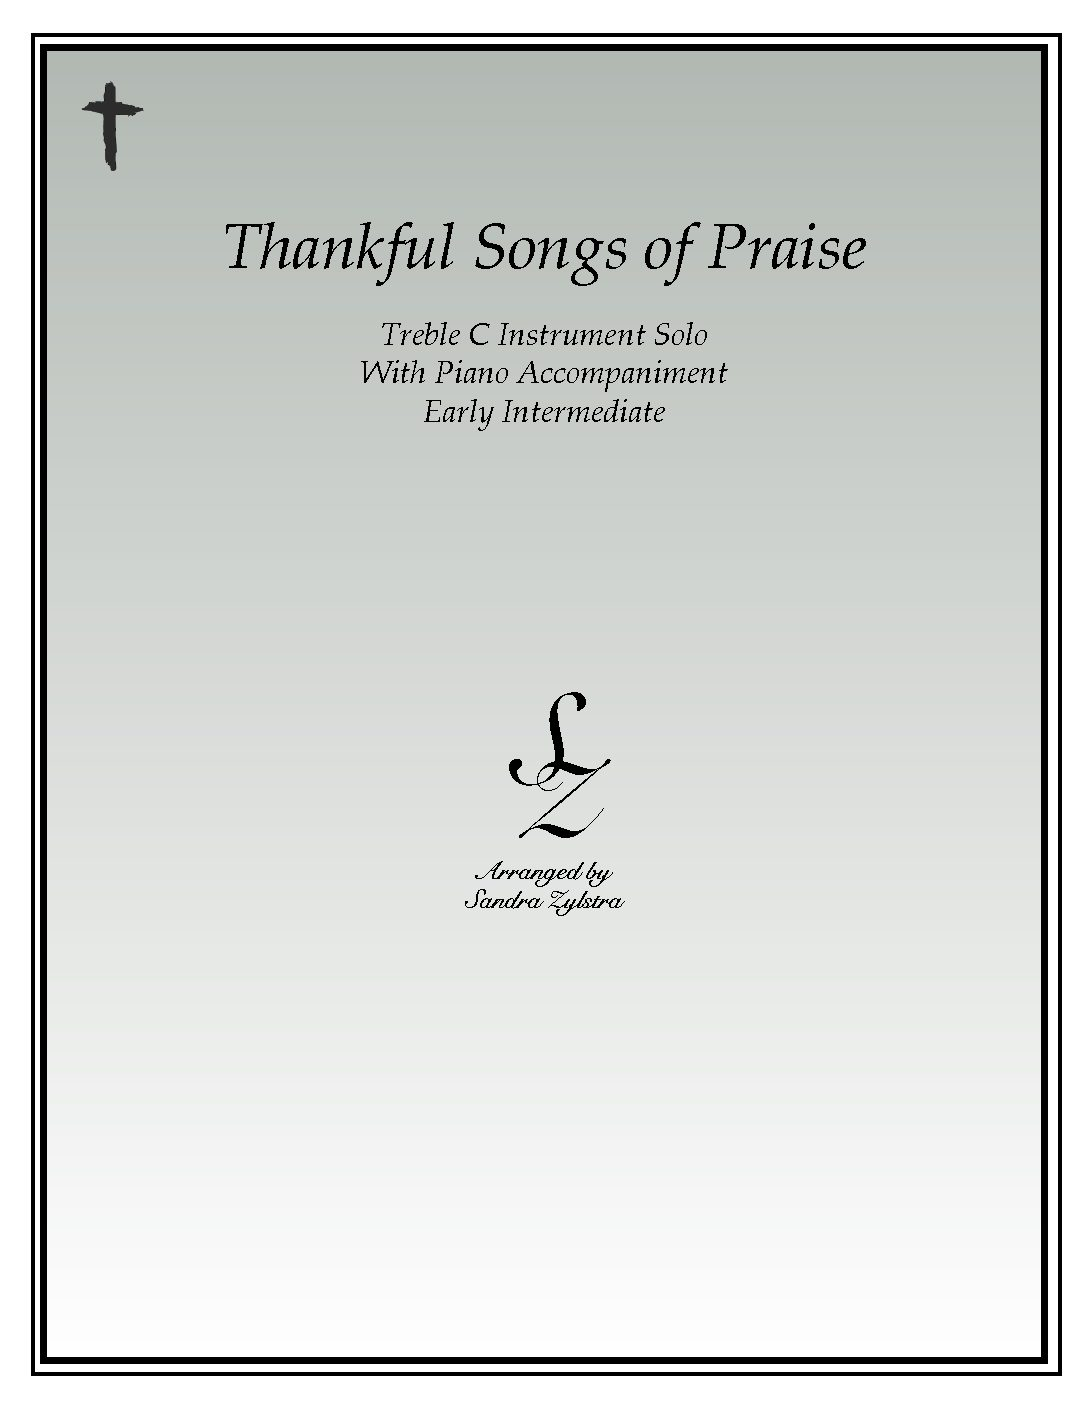 Thankful Songs Of Praise -Treble C Instrument Solo